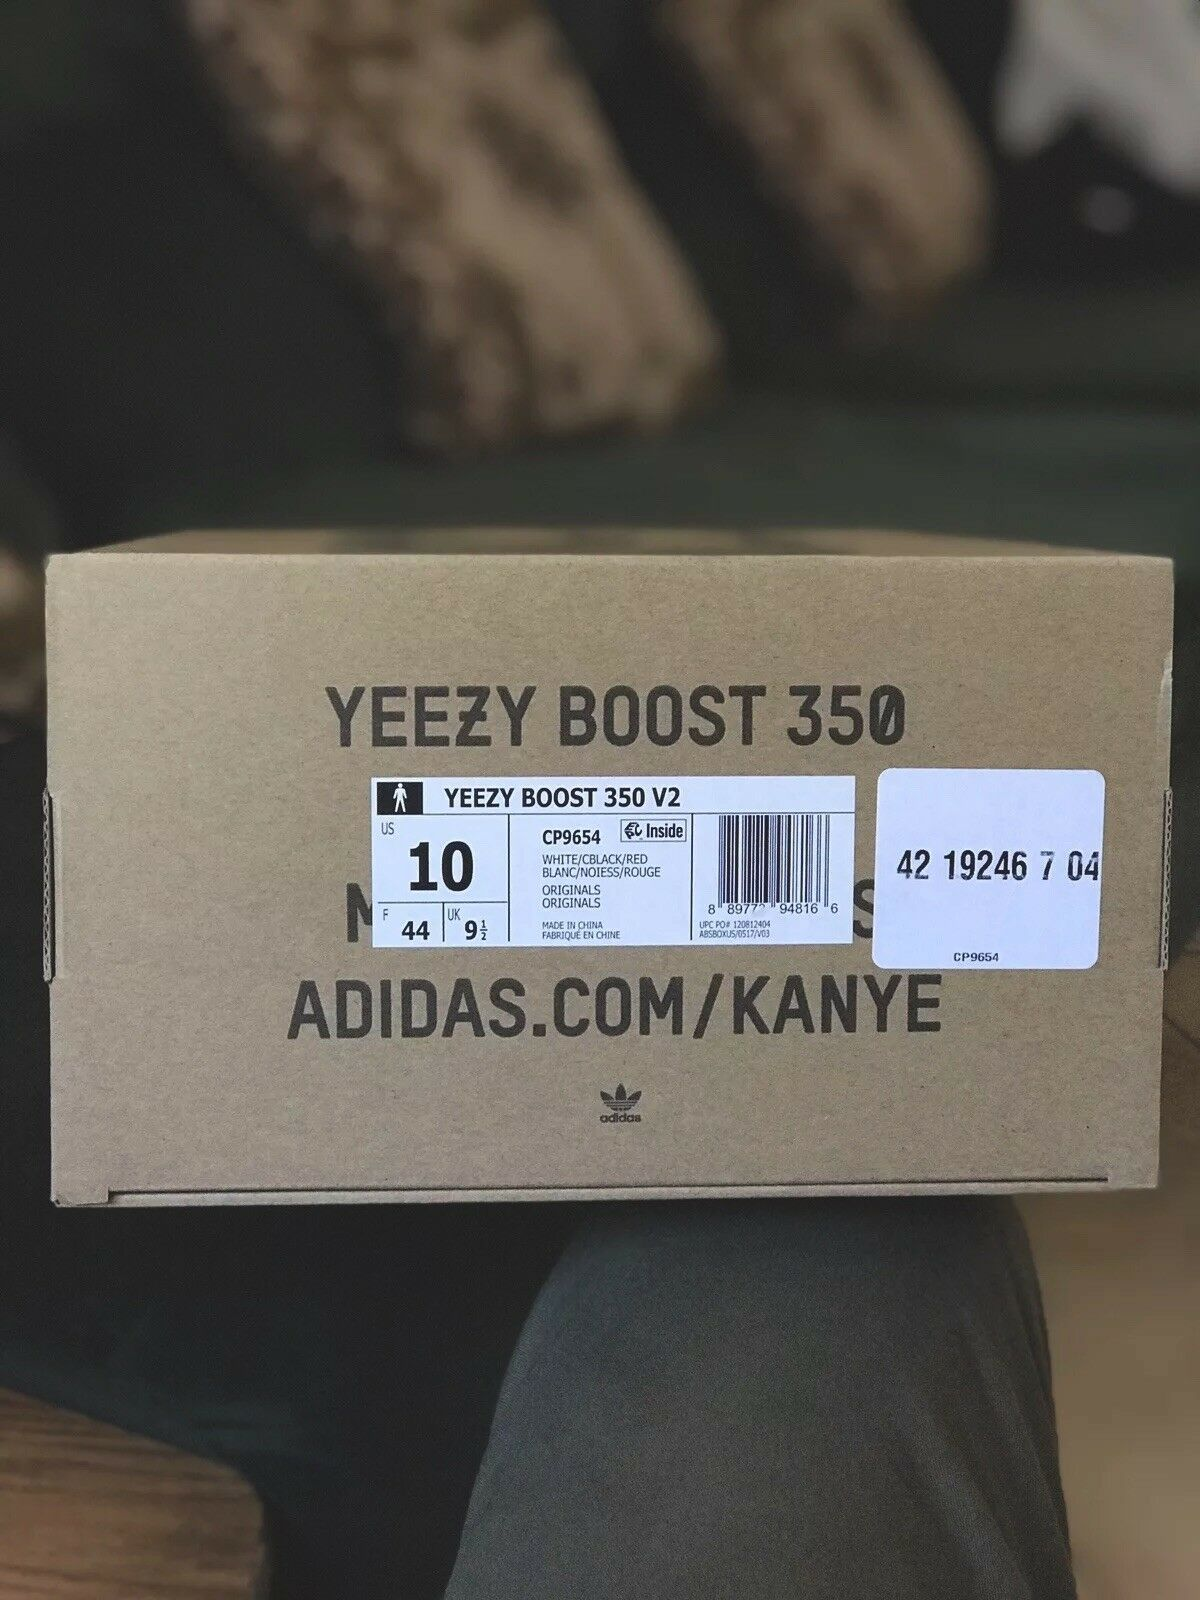 e9bae3489 Adidas Yeezy Boost V2 350 Size Size Size US 10 Brand New Authentic 100%  Black